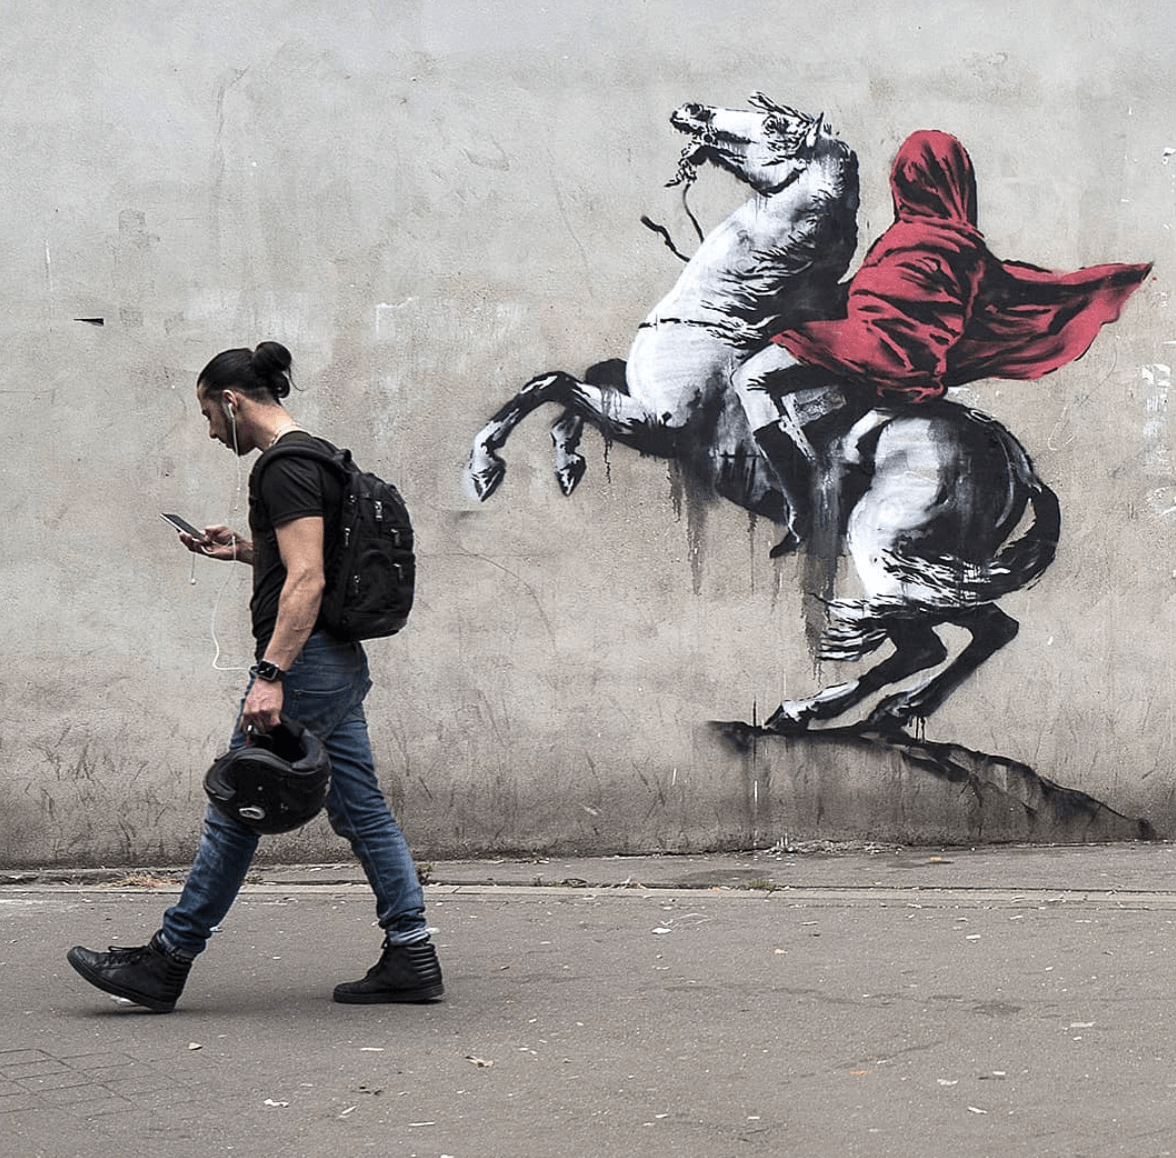 New Banksy Stencil Art Is Causing A Riot In Paris 2018